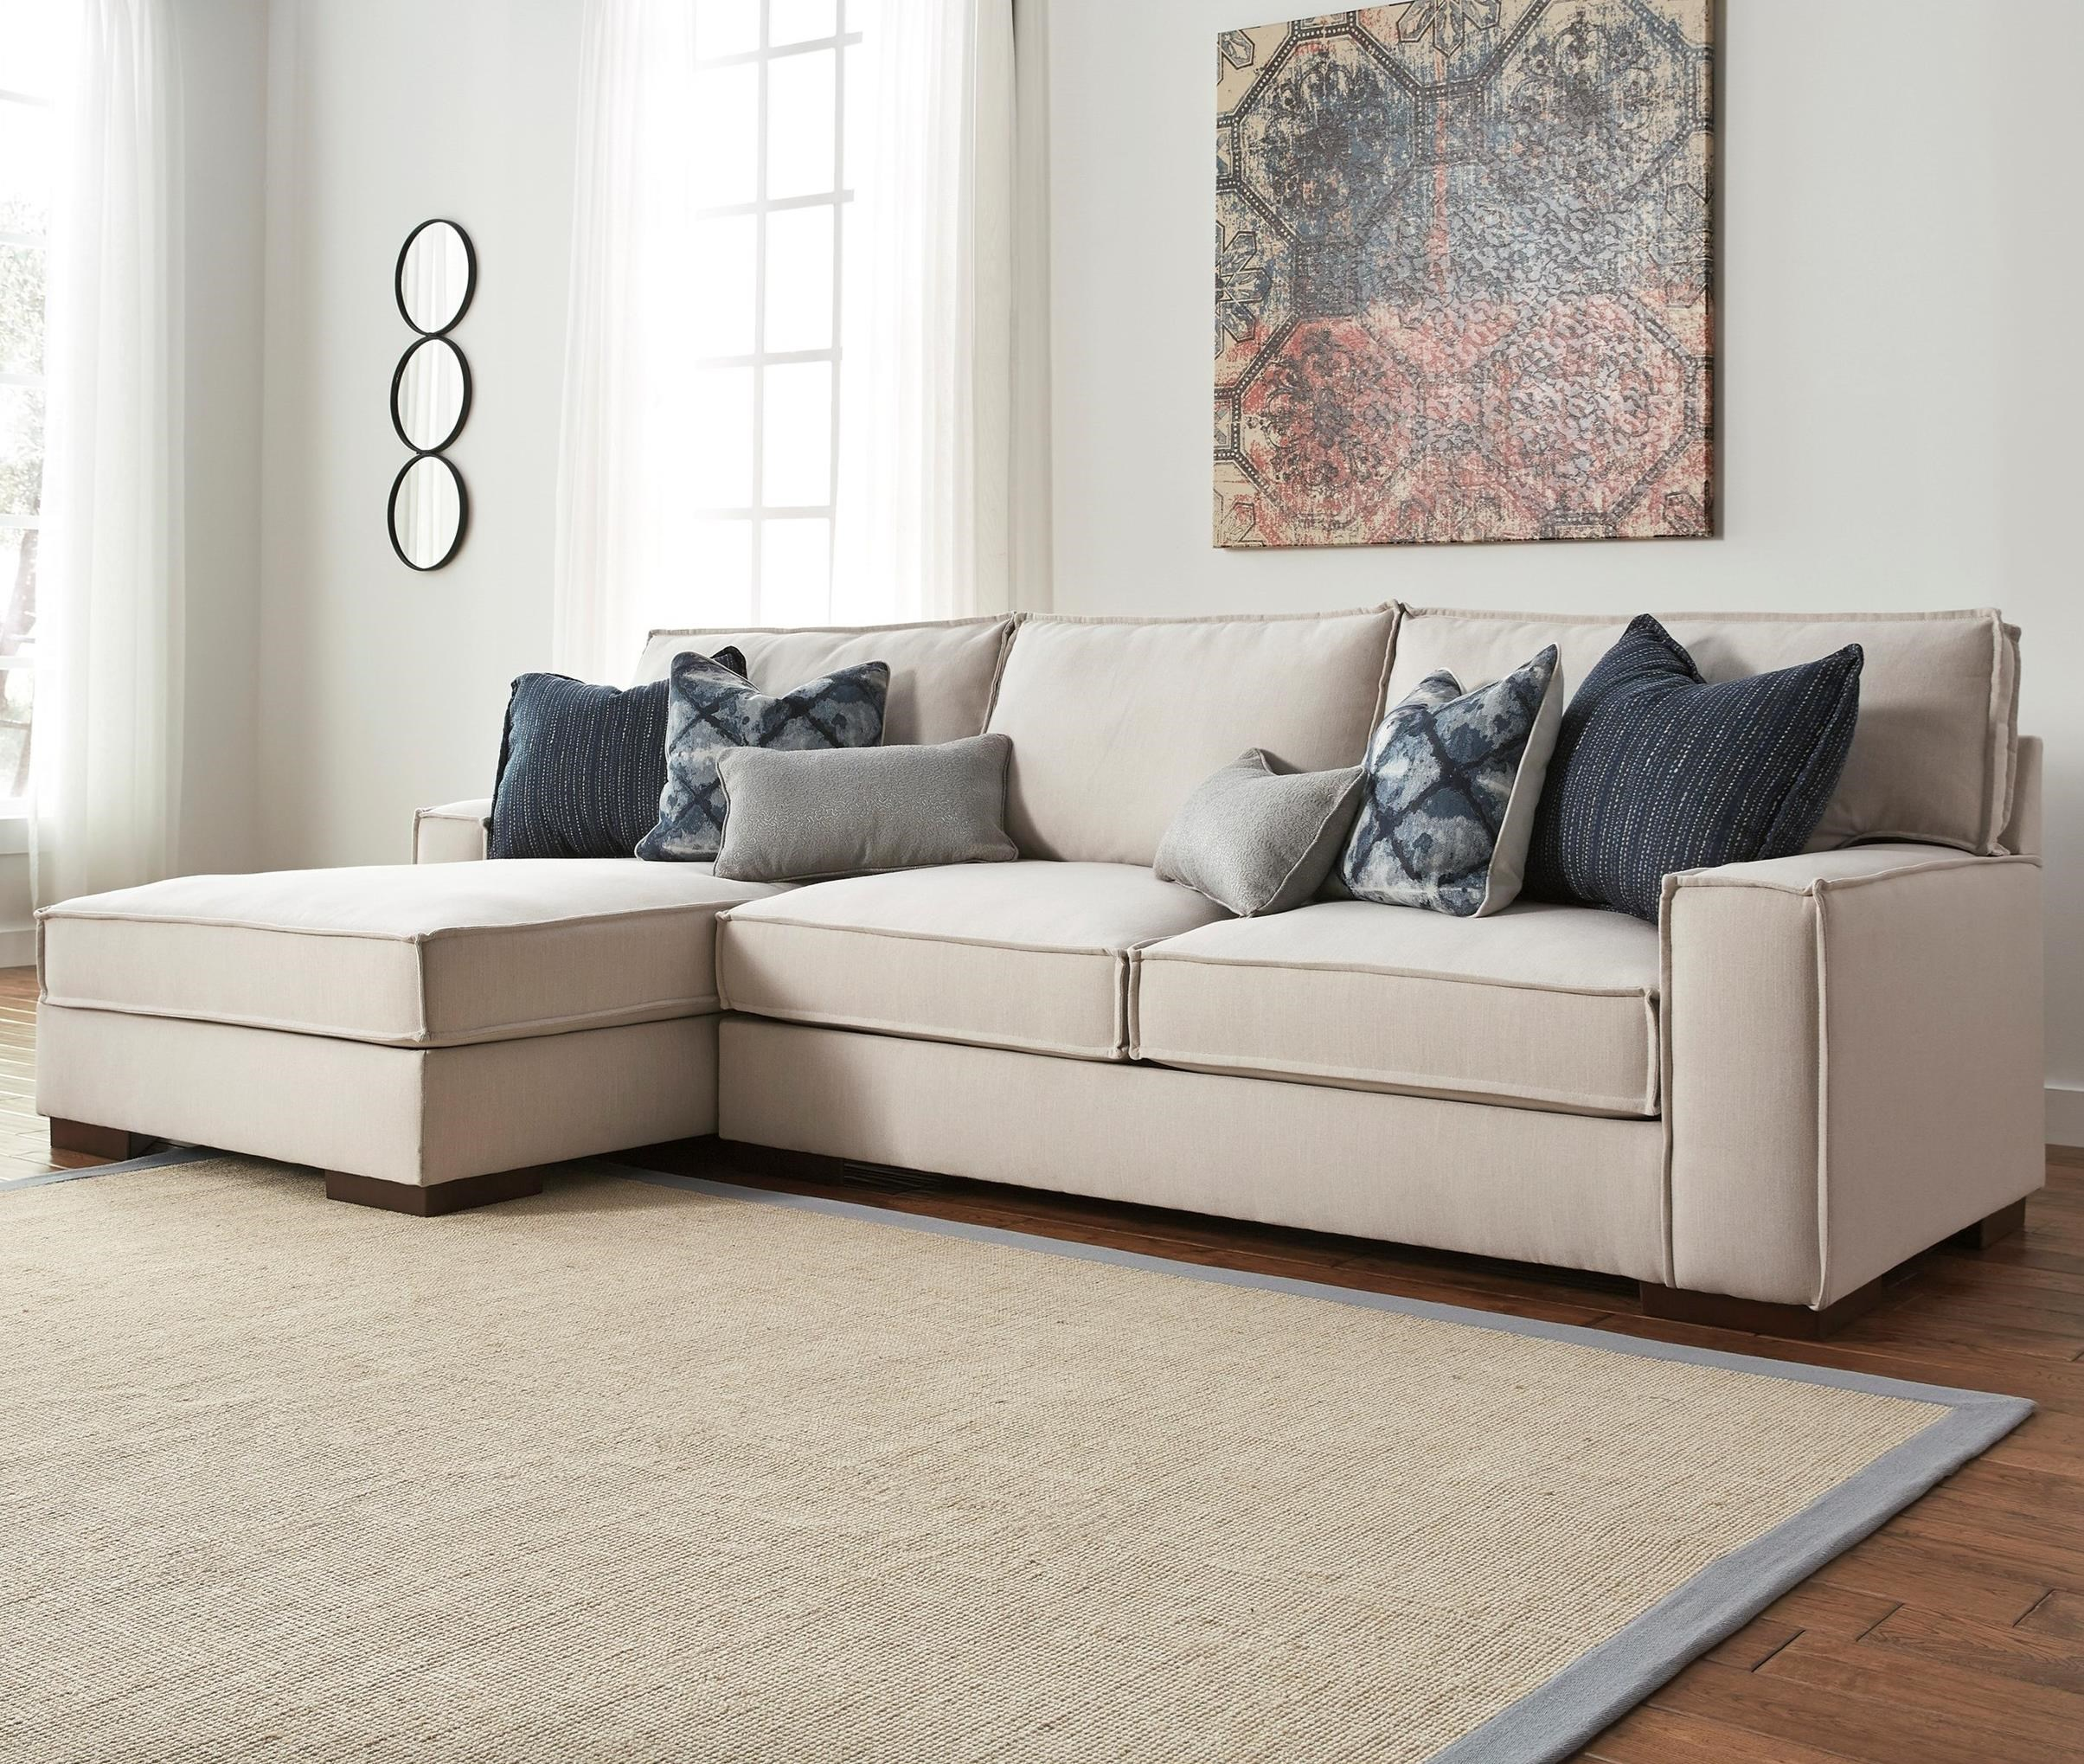 martino leather chaise sectional sofa 2 piece apartment and swedish design benchcraft kendleton modern with left